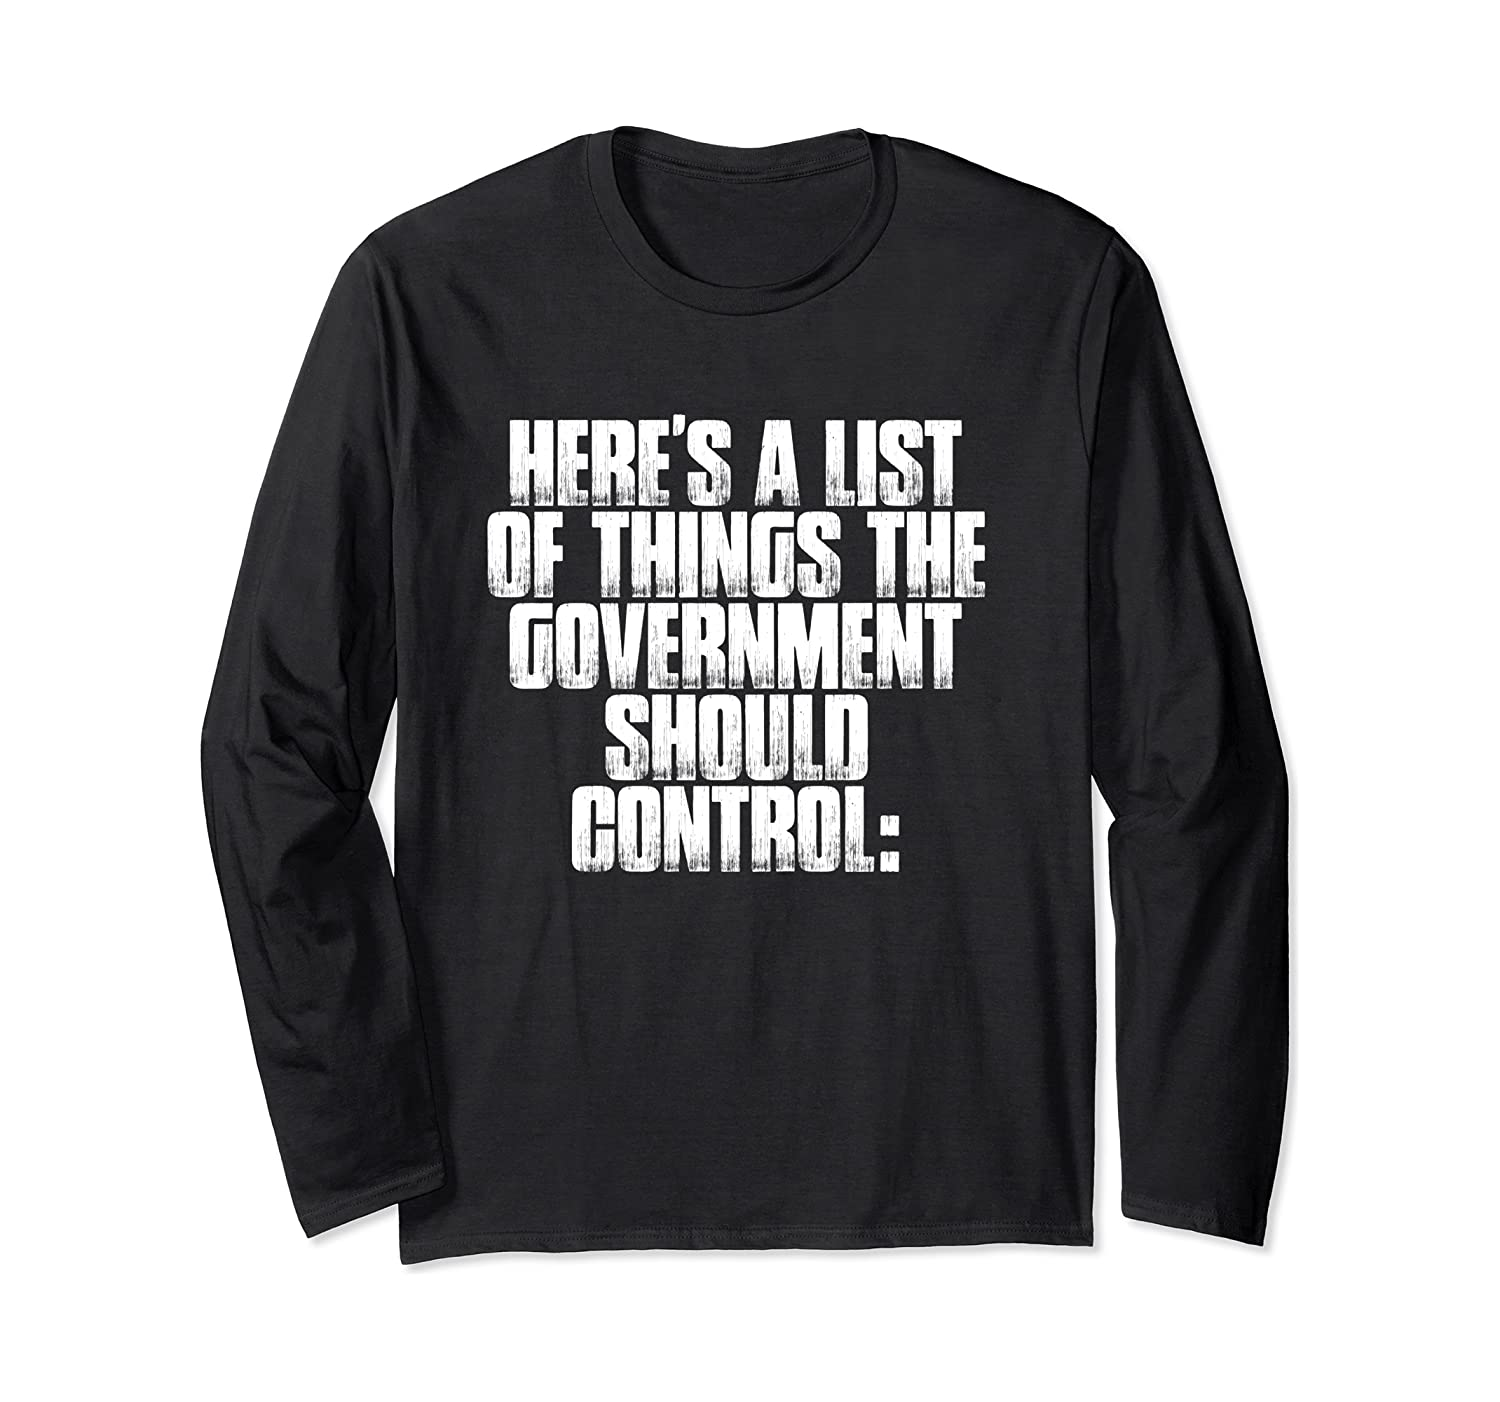 Here's A List Of Things The Government Should Control: Long Sleeve T-Shirt